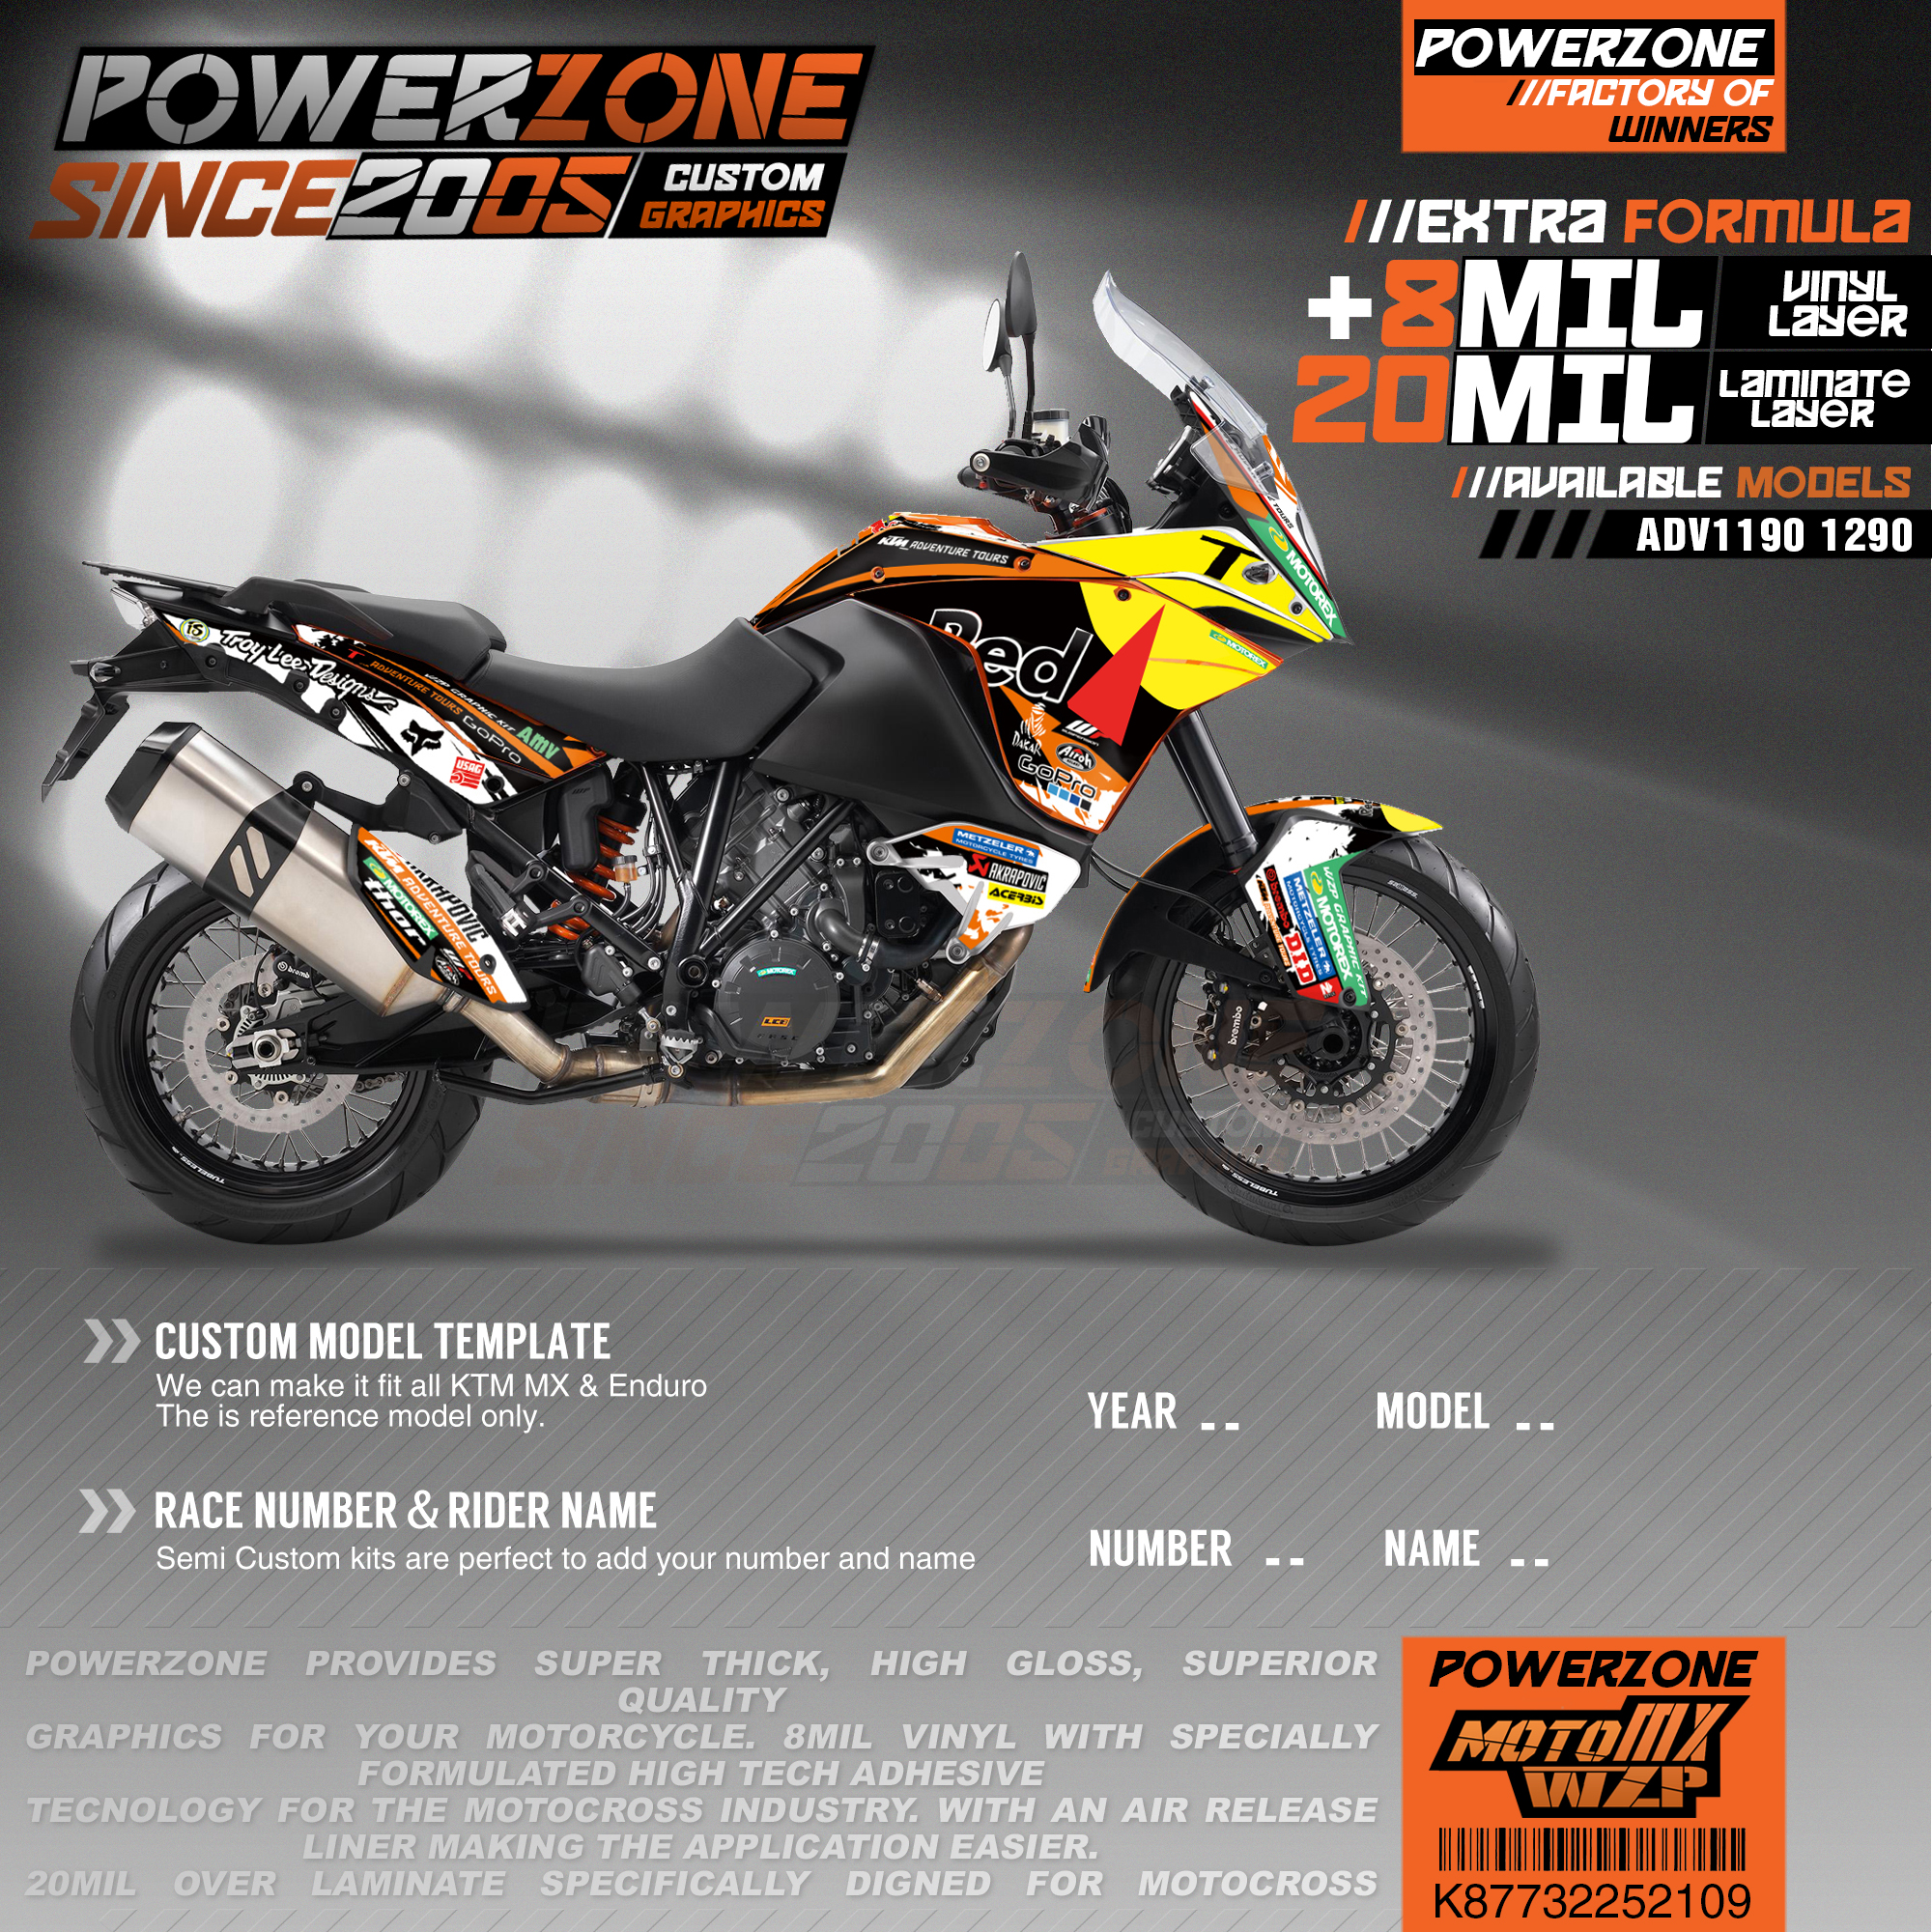 PowerZone Custom Team Graphics Backgrounds Decals 3M Stickers Kit For KTM ADV 1050 1090 1190 1290 109